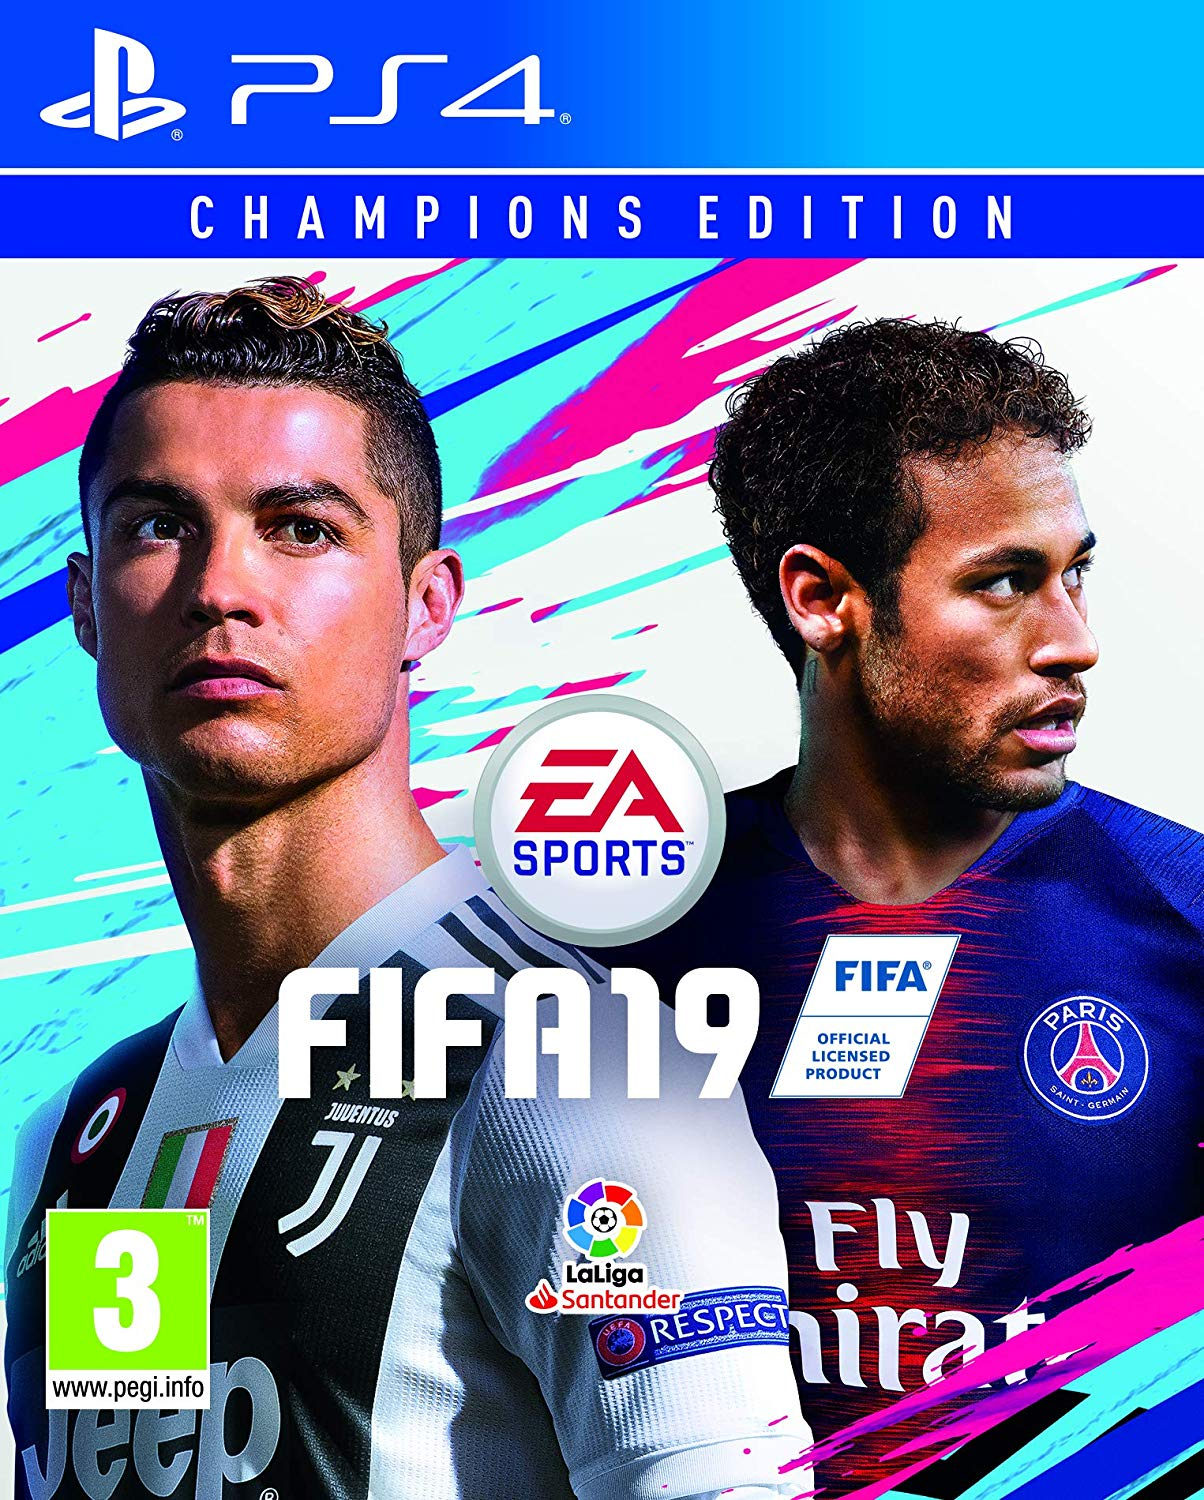 PS4 EA Sports FIFA 19 em Español Edición Champions (PlayStation